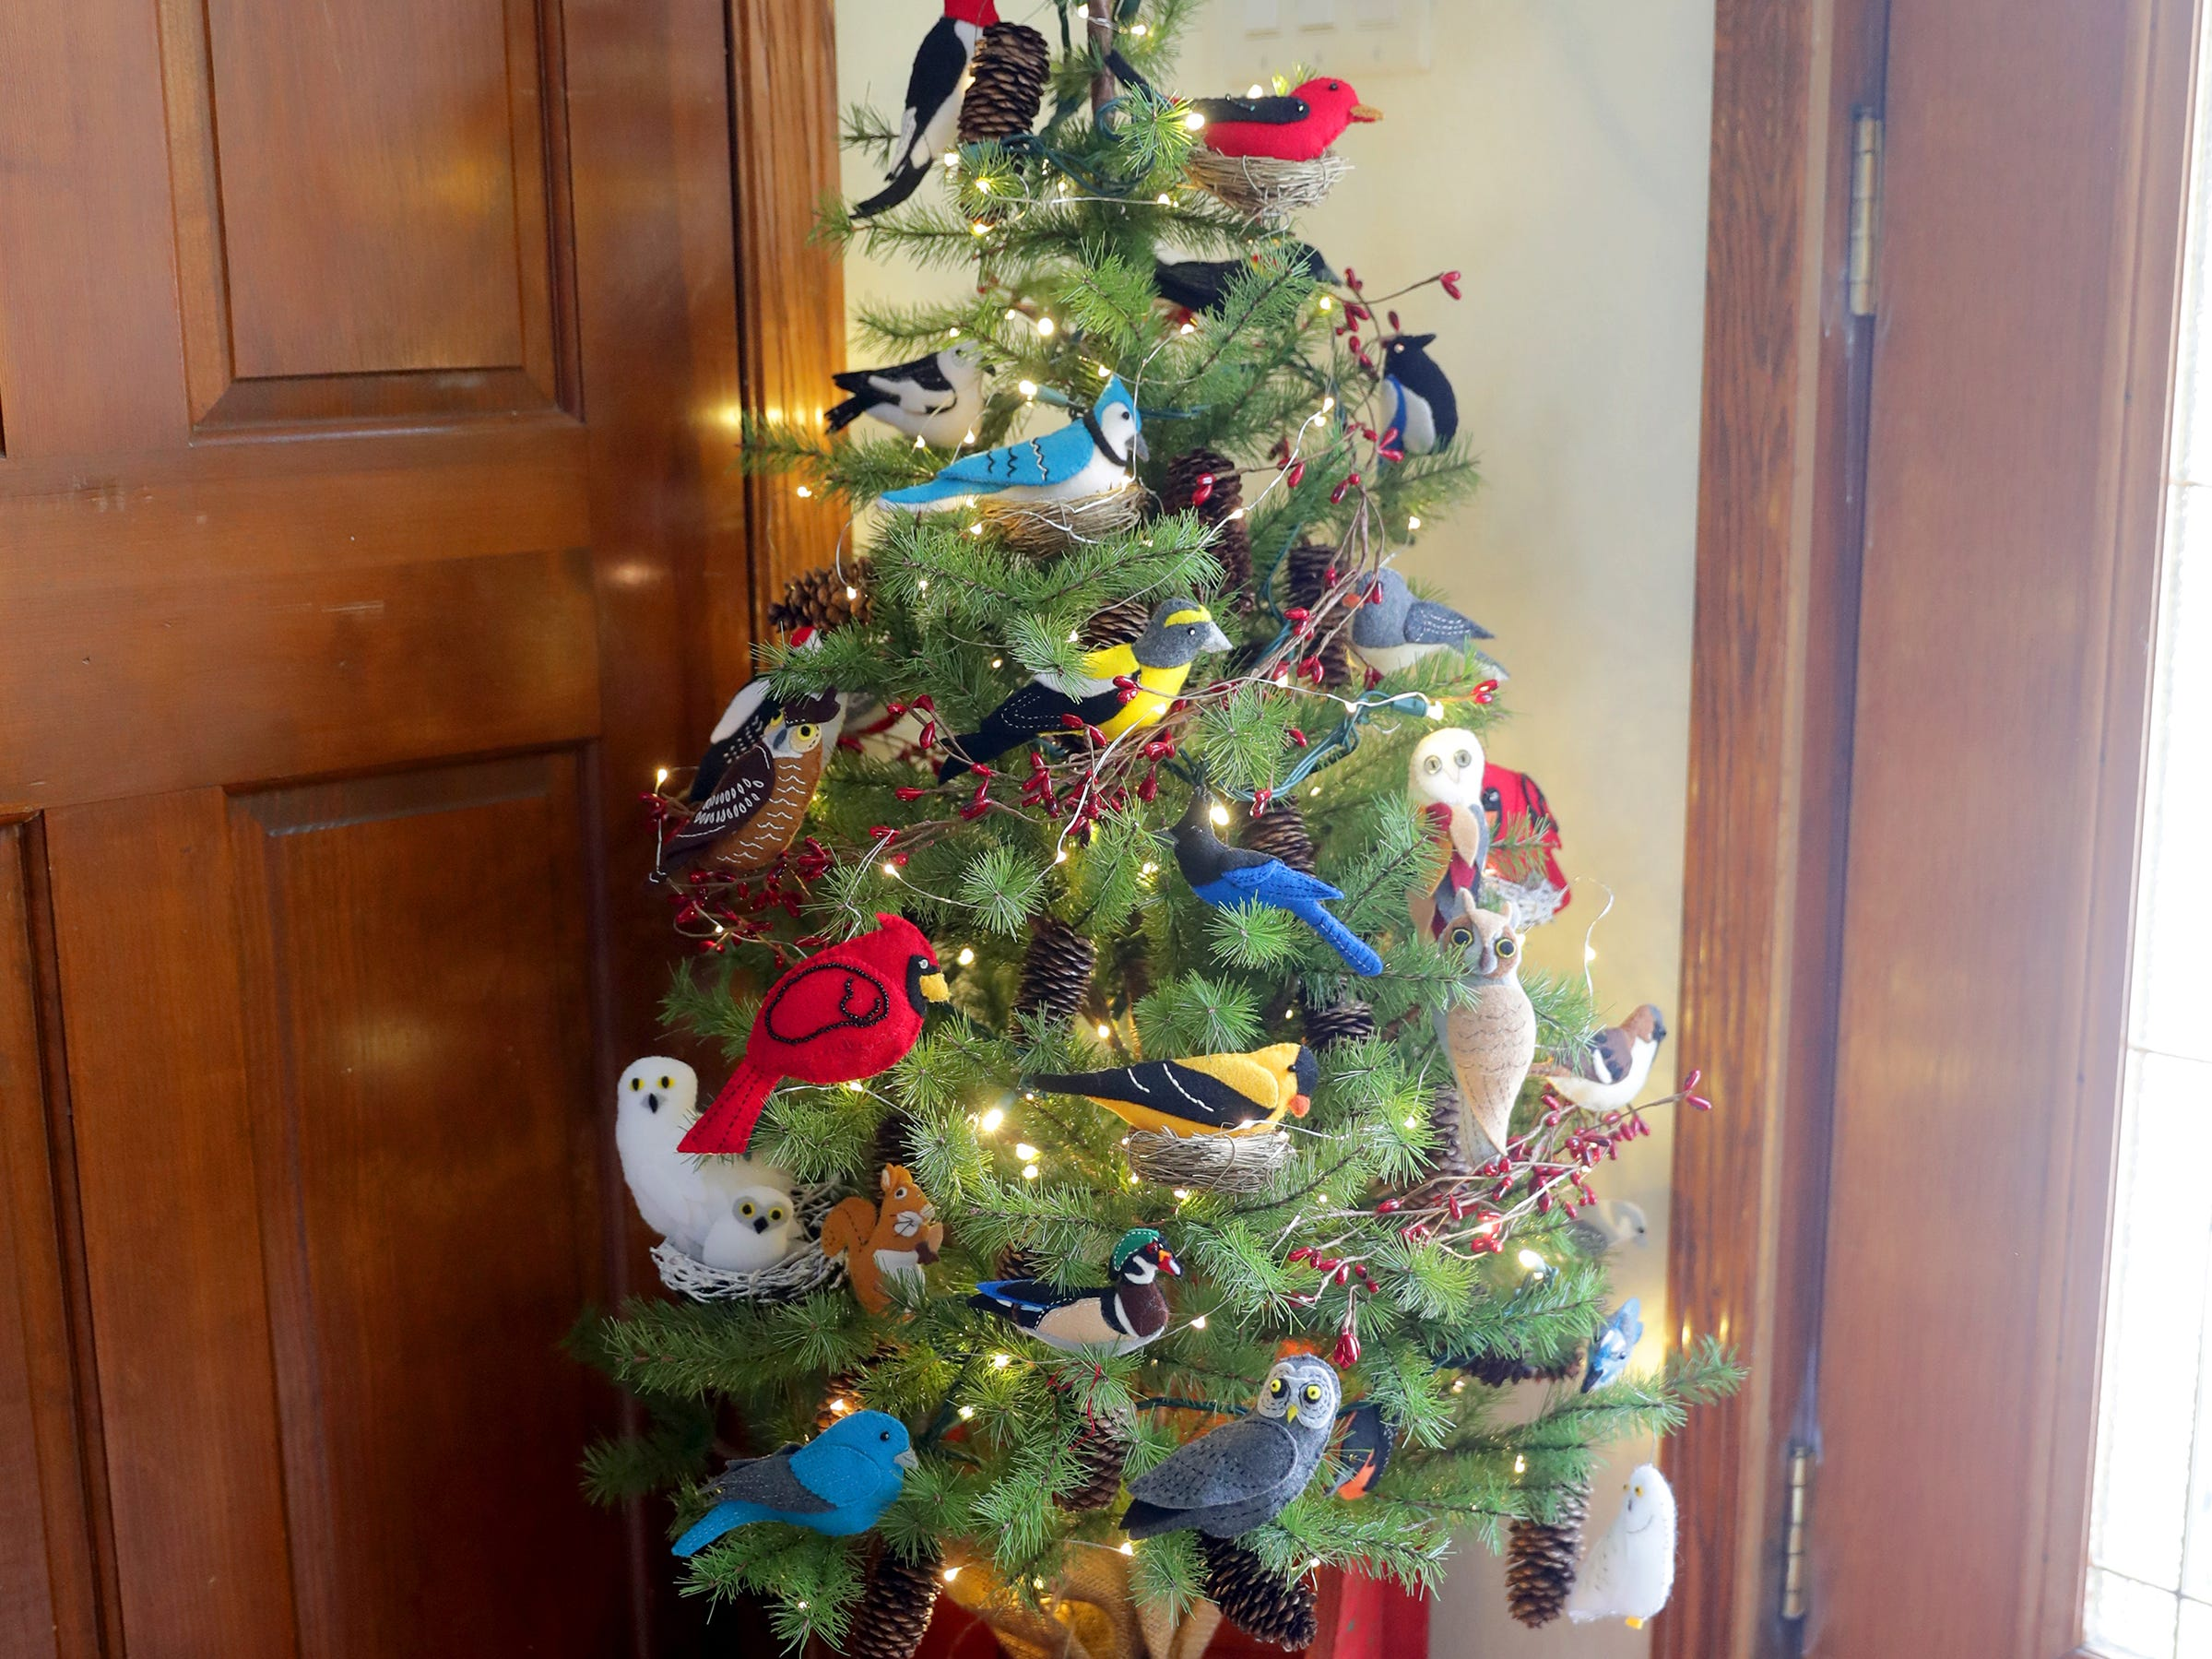 A small tree near the entryway is decorated with homemade felt birds created by Renee Sirny.